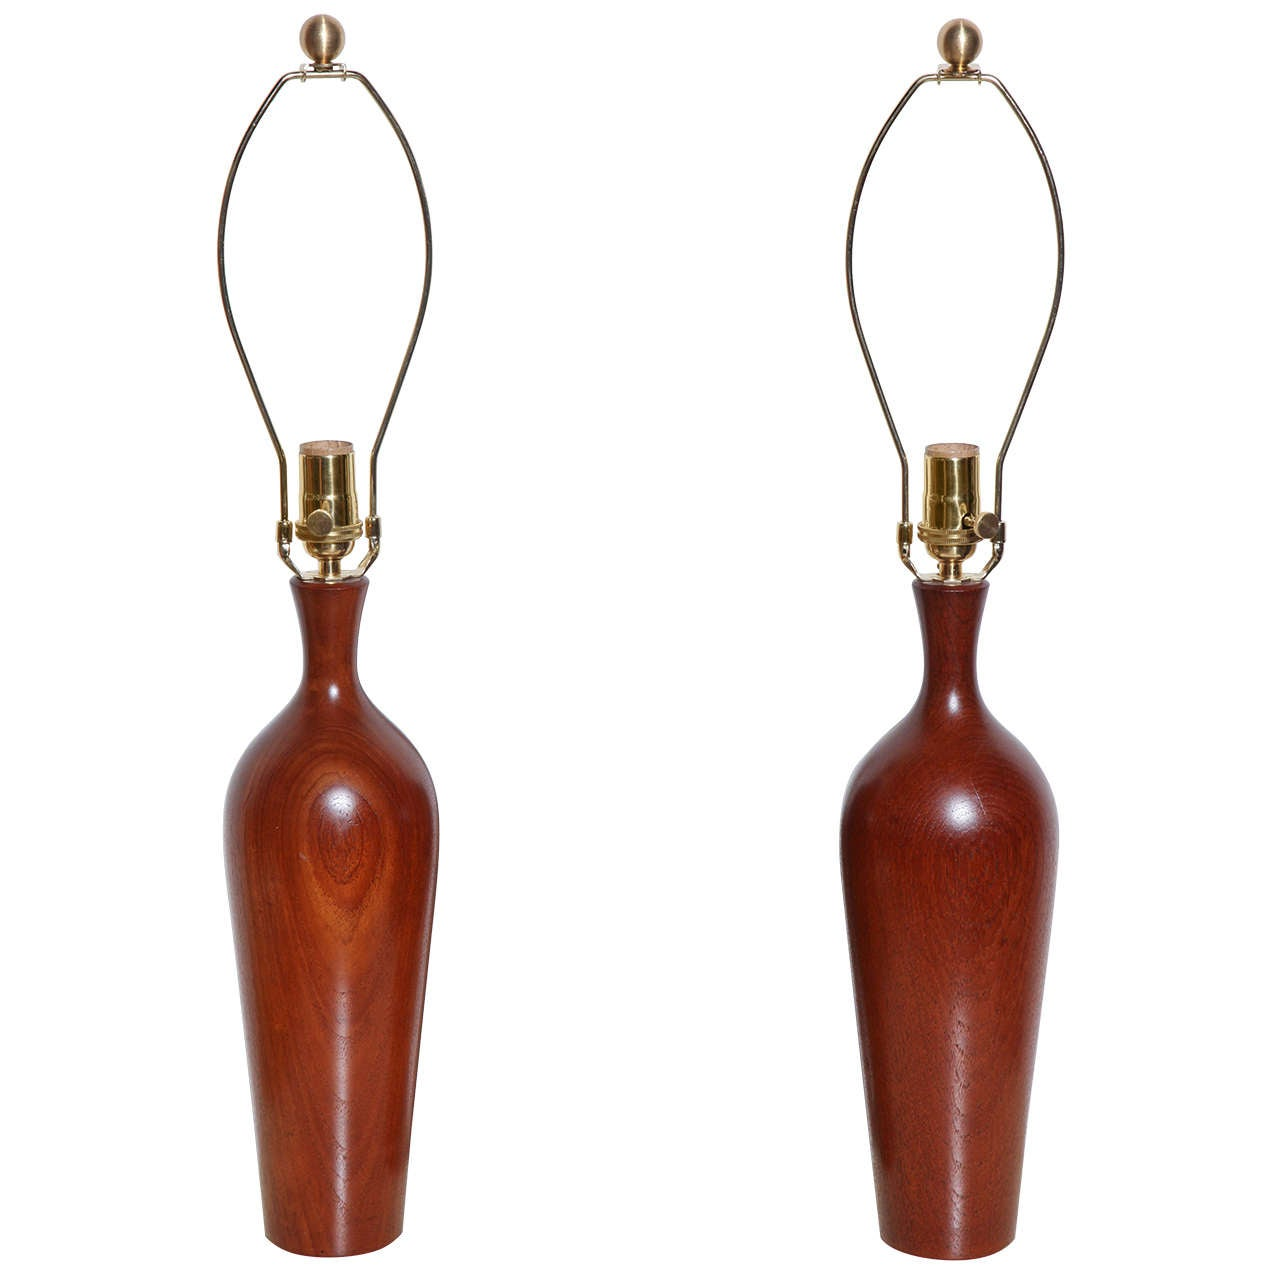 Pair of ESA Denmark Turned Solid Teak Table Lamps, 1950s